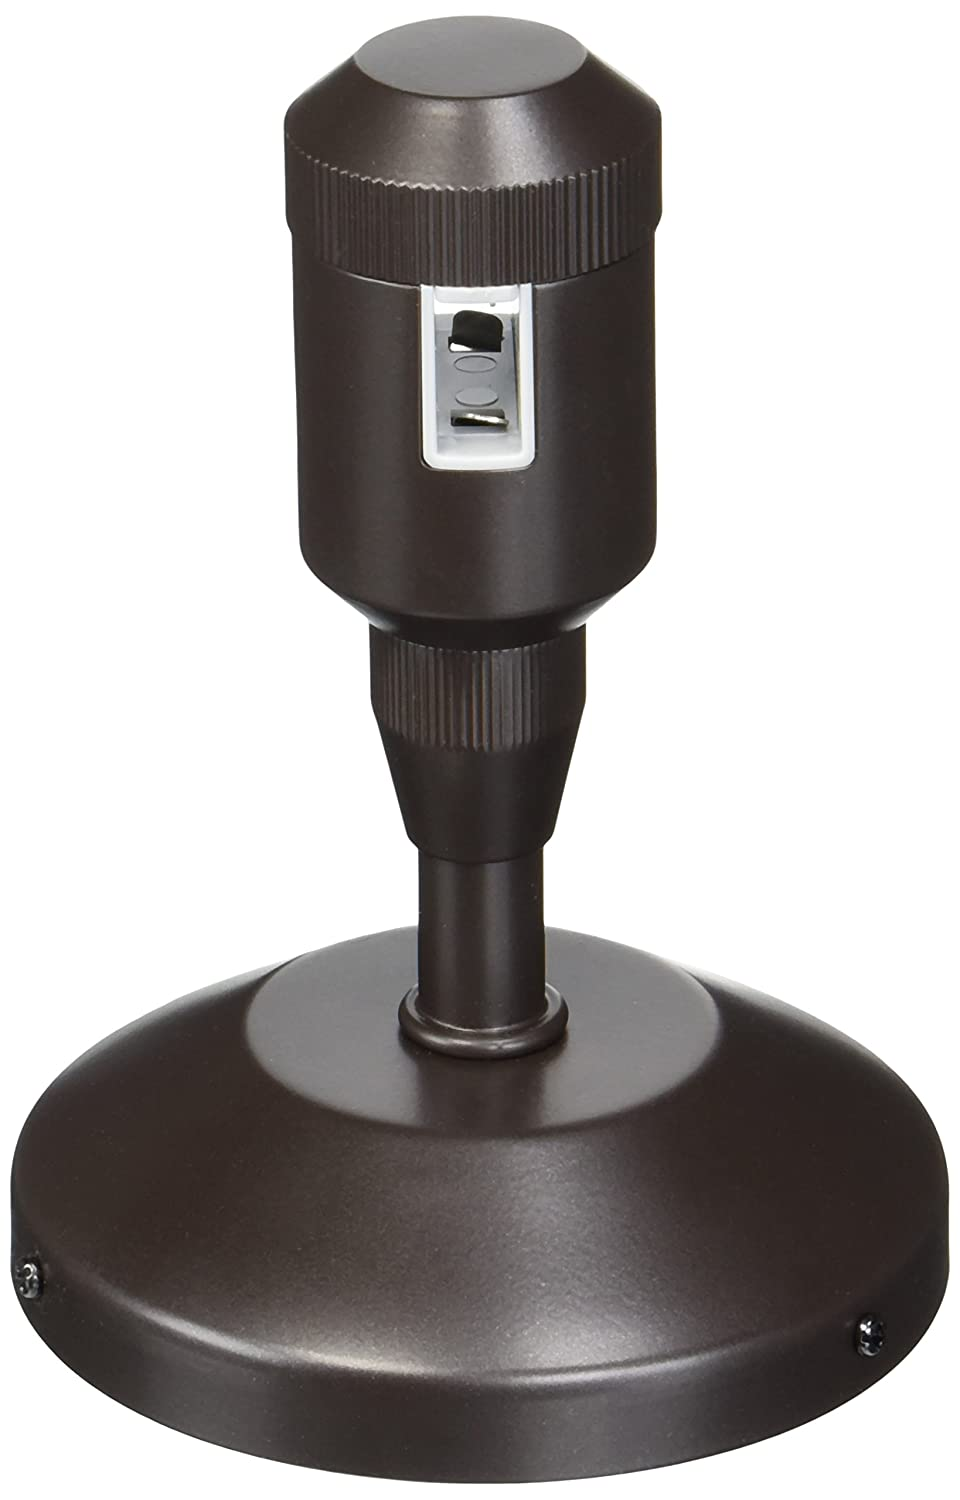 WAC Lighting HM1-PCT6-DB Flexrail-1 Stem Power Connector 6-Inch